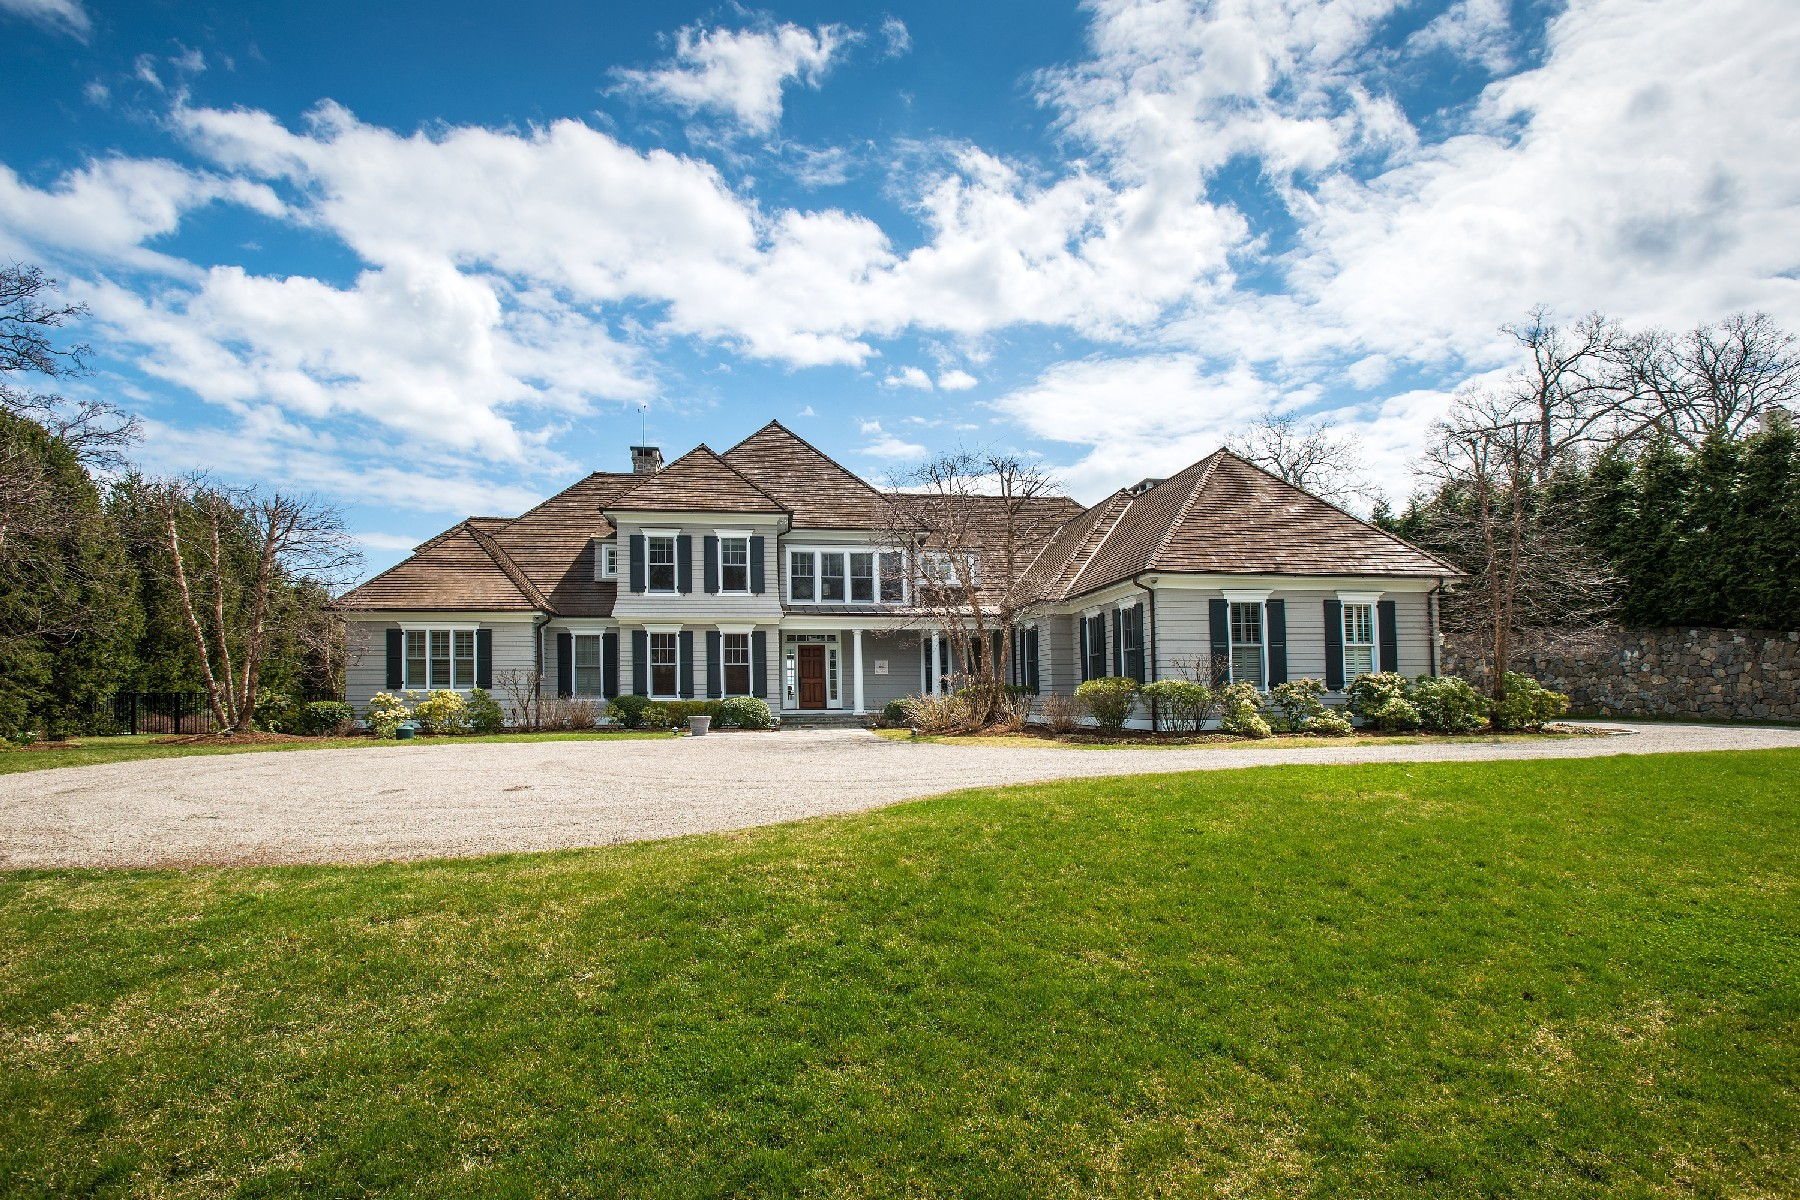 Single Family Home for Sale at Wilson Point - Spectacular Waterviews 10 Woodland Road Norwalk, Connecticut, 06854 United States